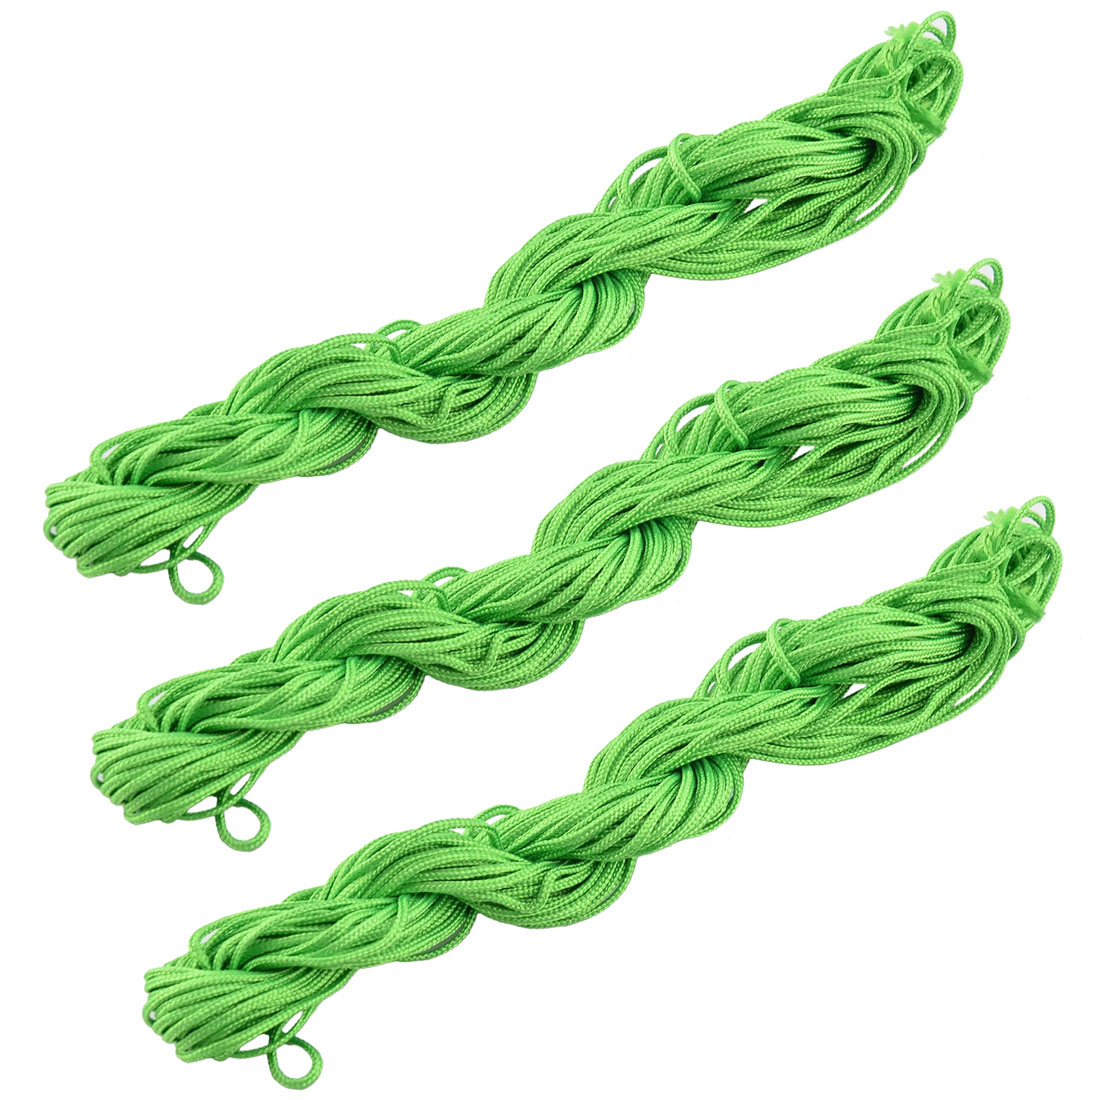 Polyester Chinese Knot Bracelet Rattail Cord String Light Green 16 Yards 3pcs